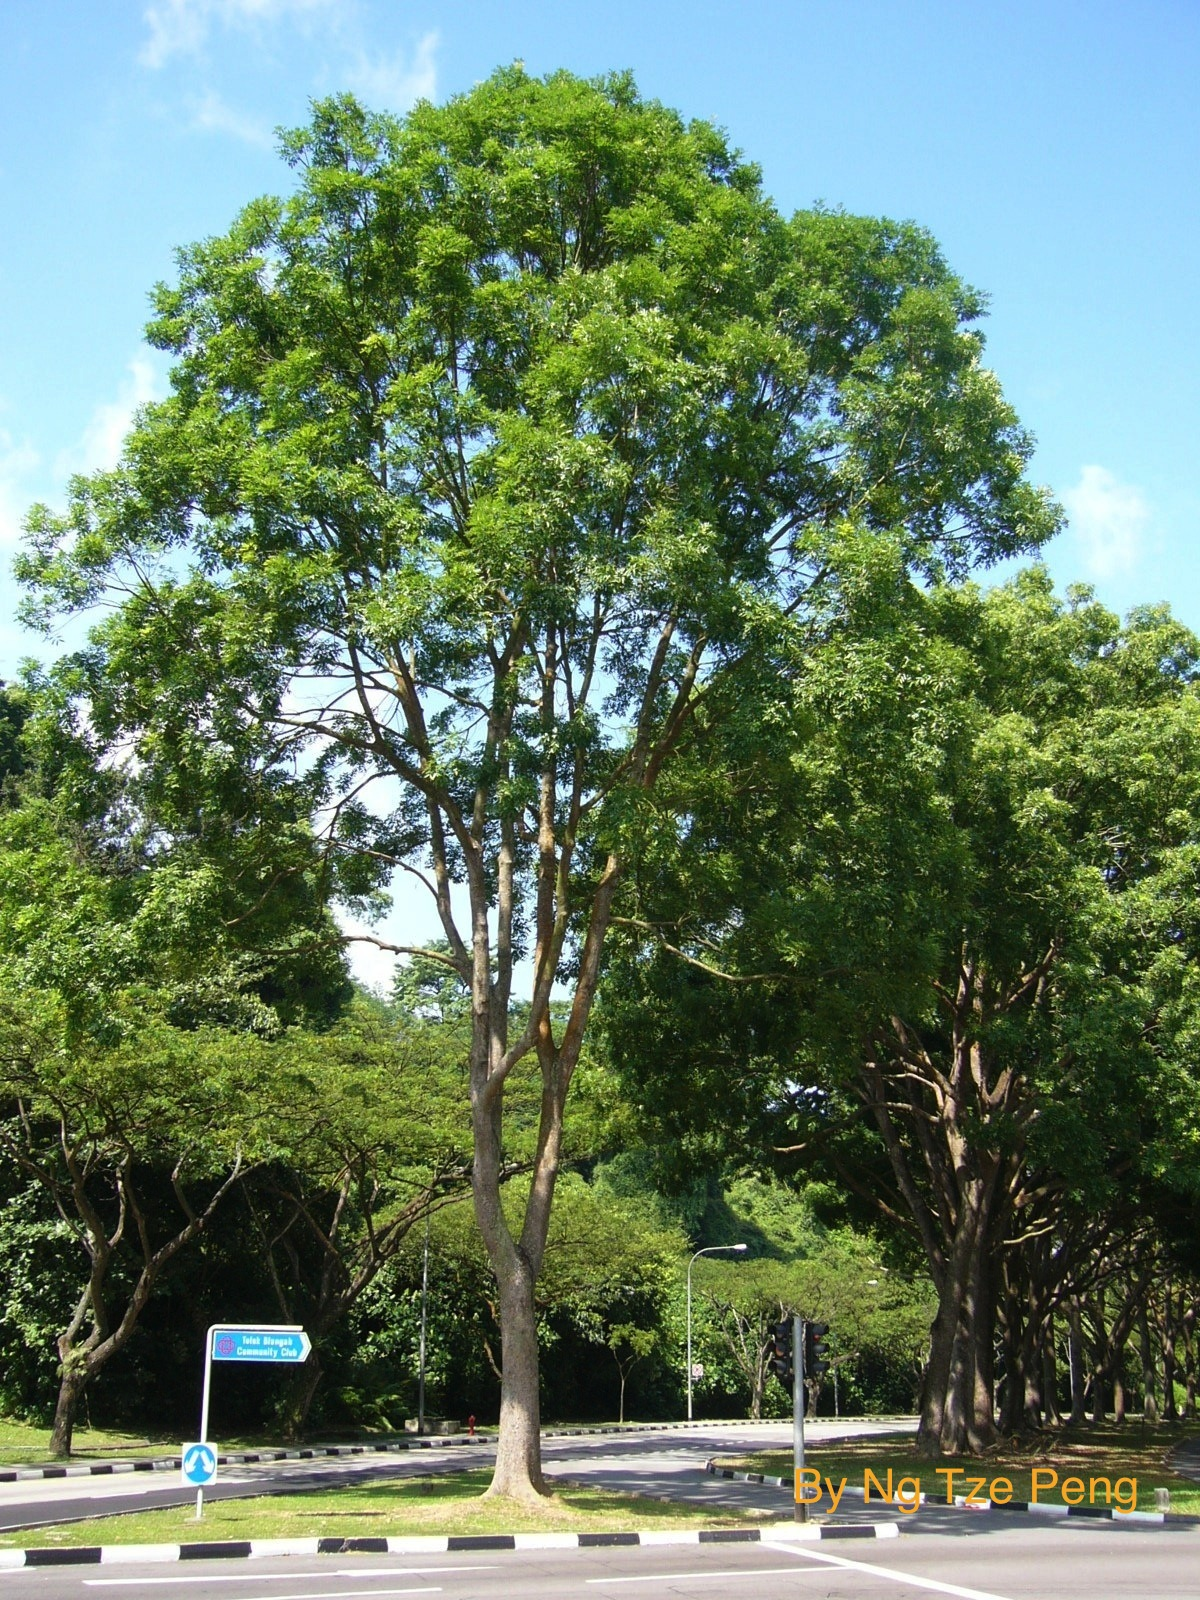 TP Arbo Care Pte Ltd (Arborist and Tree assessment service ...